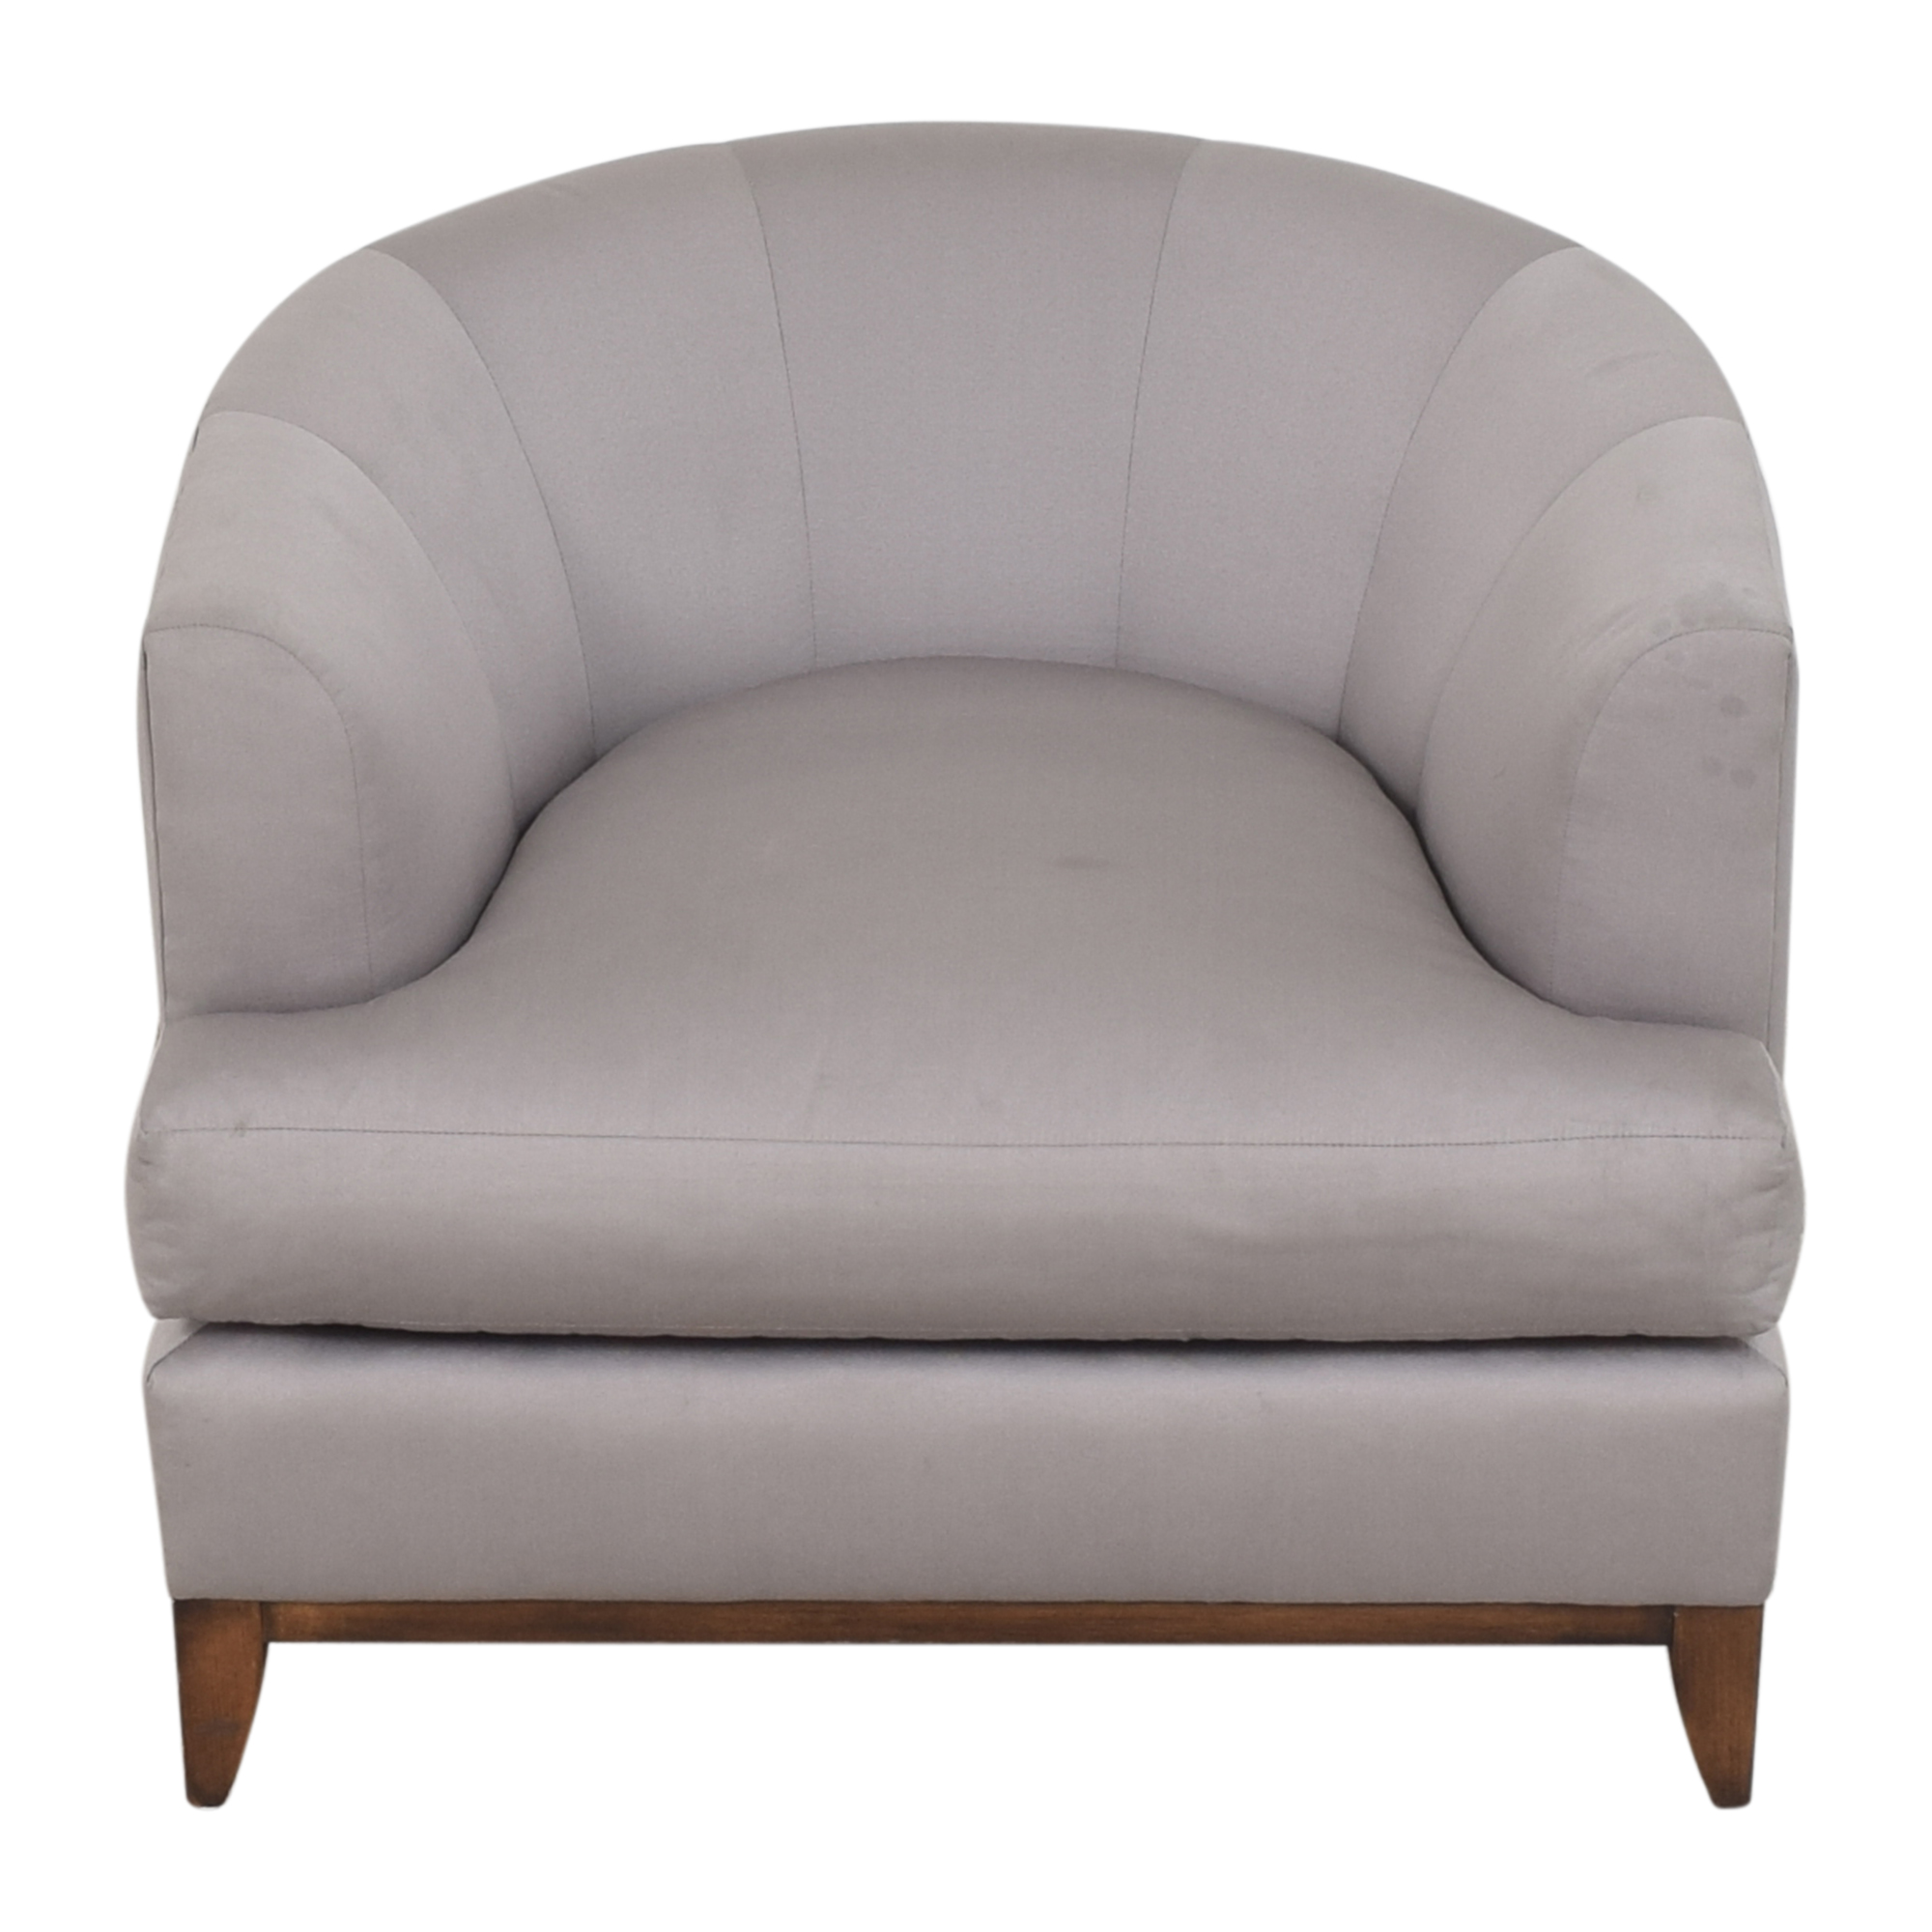 Barbara Barry Barbara Barry for Henredon Channel Back Tub Chair for sale